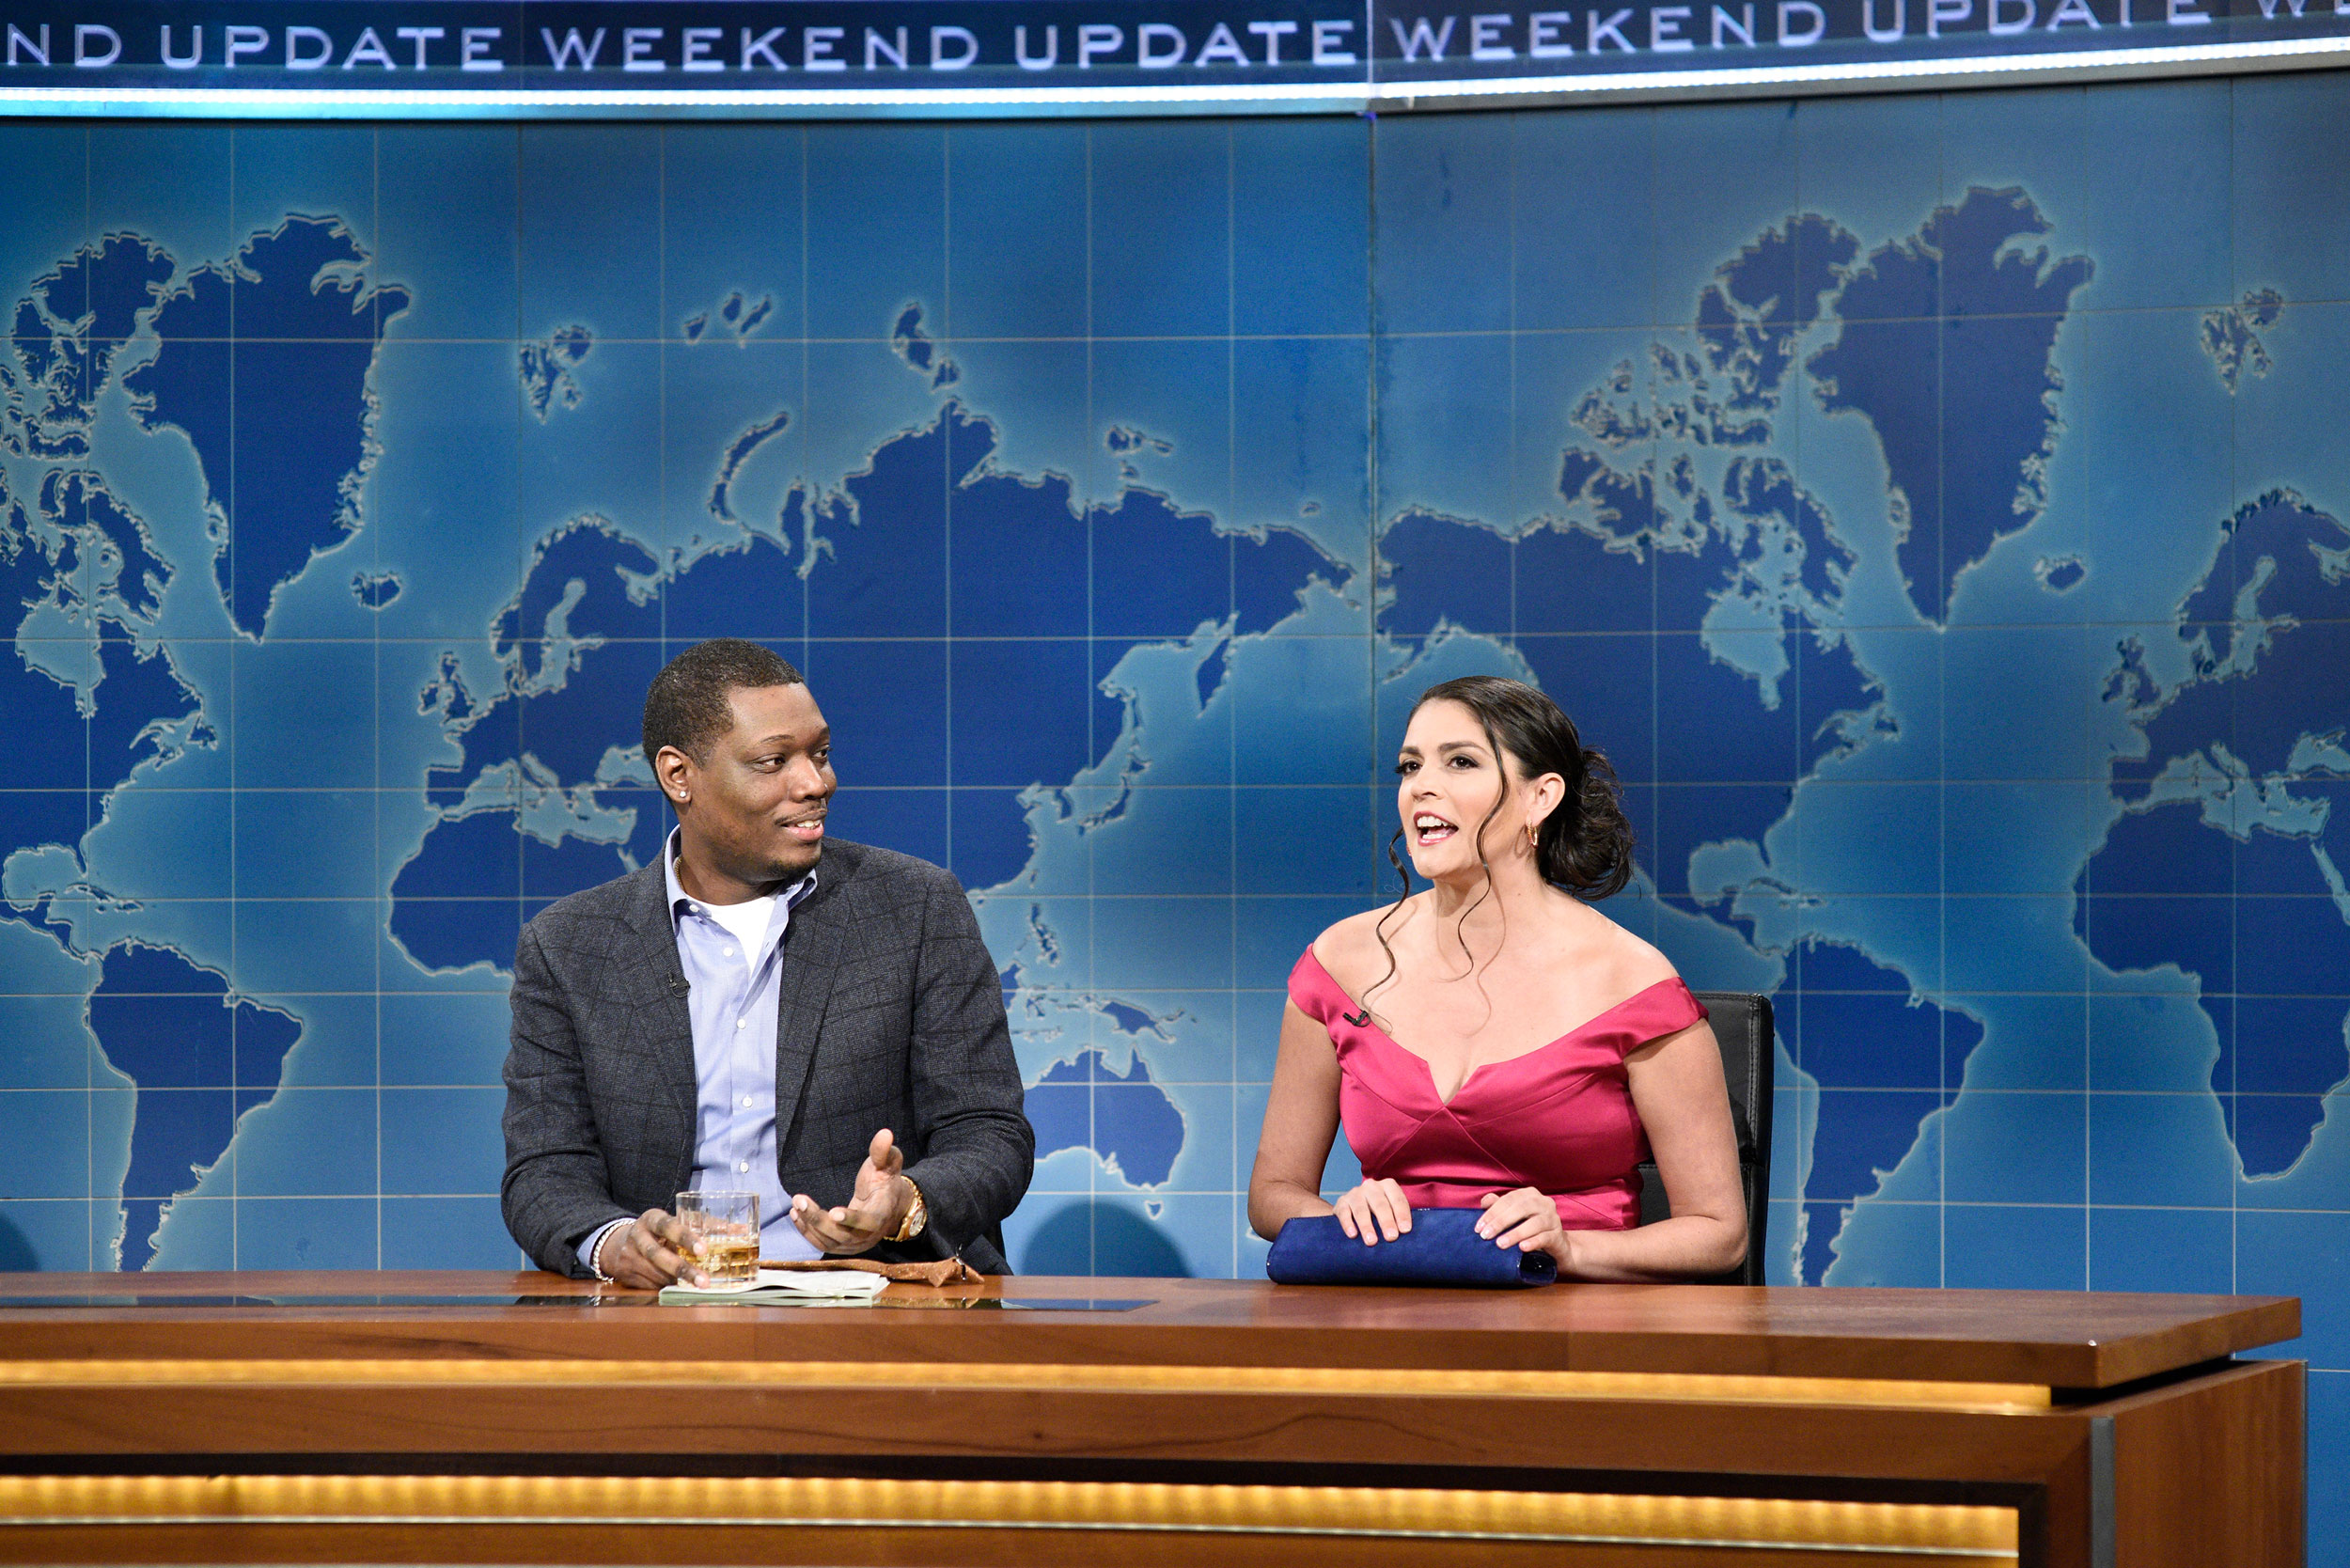 Michael Che and Cecily Strong during the March 7 episode of Saturday Night Live.